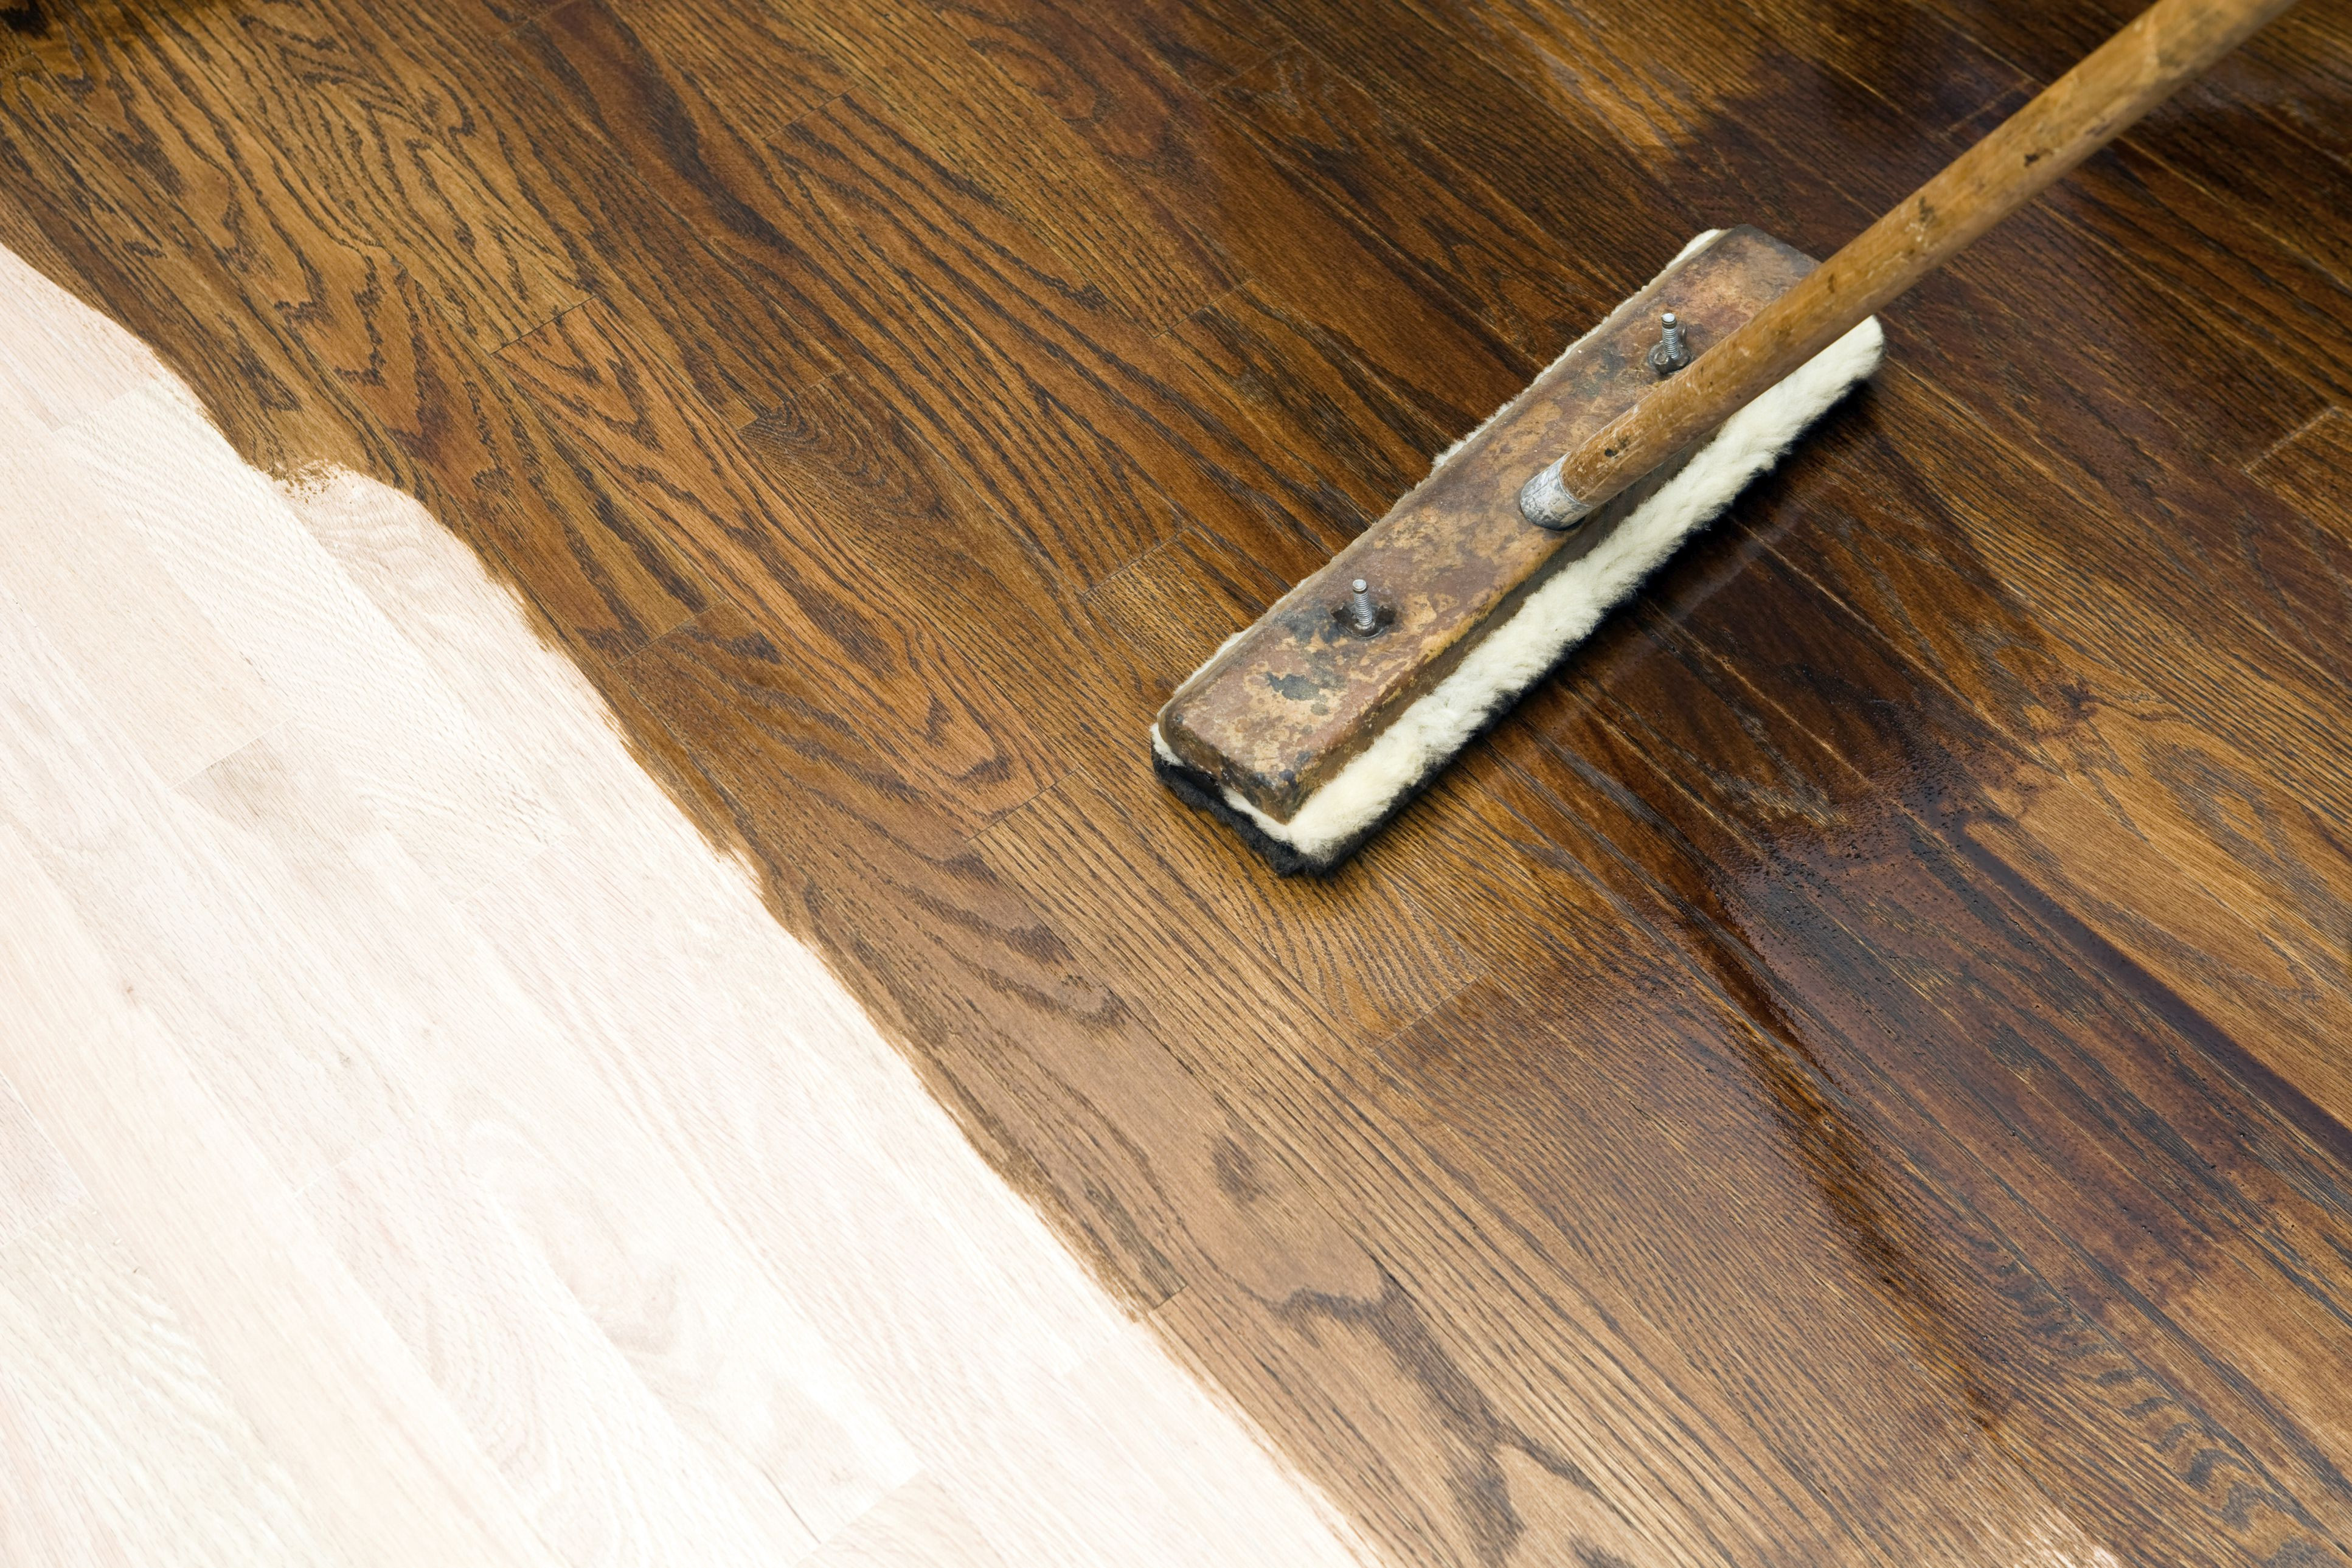 laminate floor or hardwood floor of how to build equity what it means to own more of your home for dark stain application on new oak hardwood floor 184881406 573e139f5f9b58723d7a472d